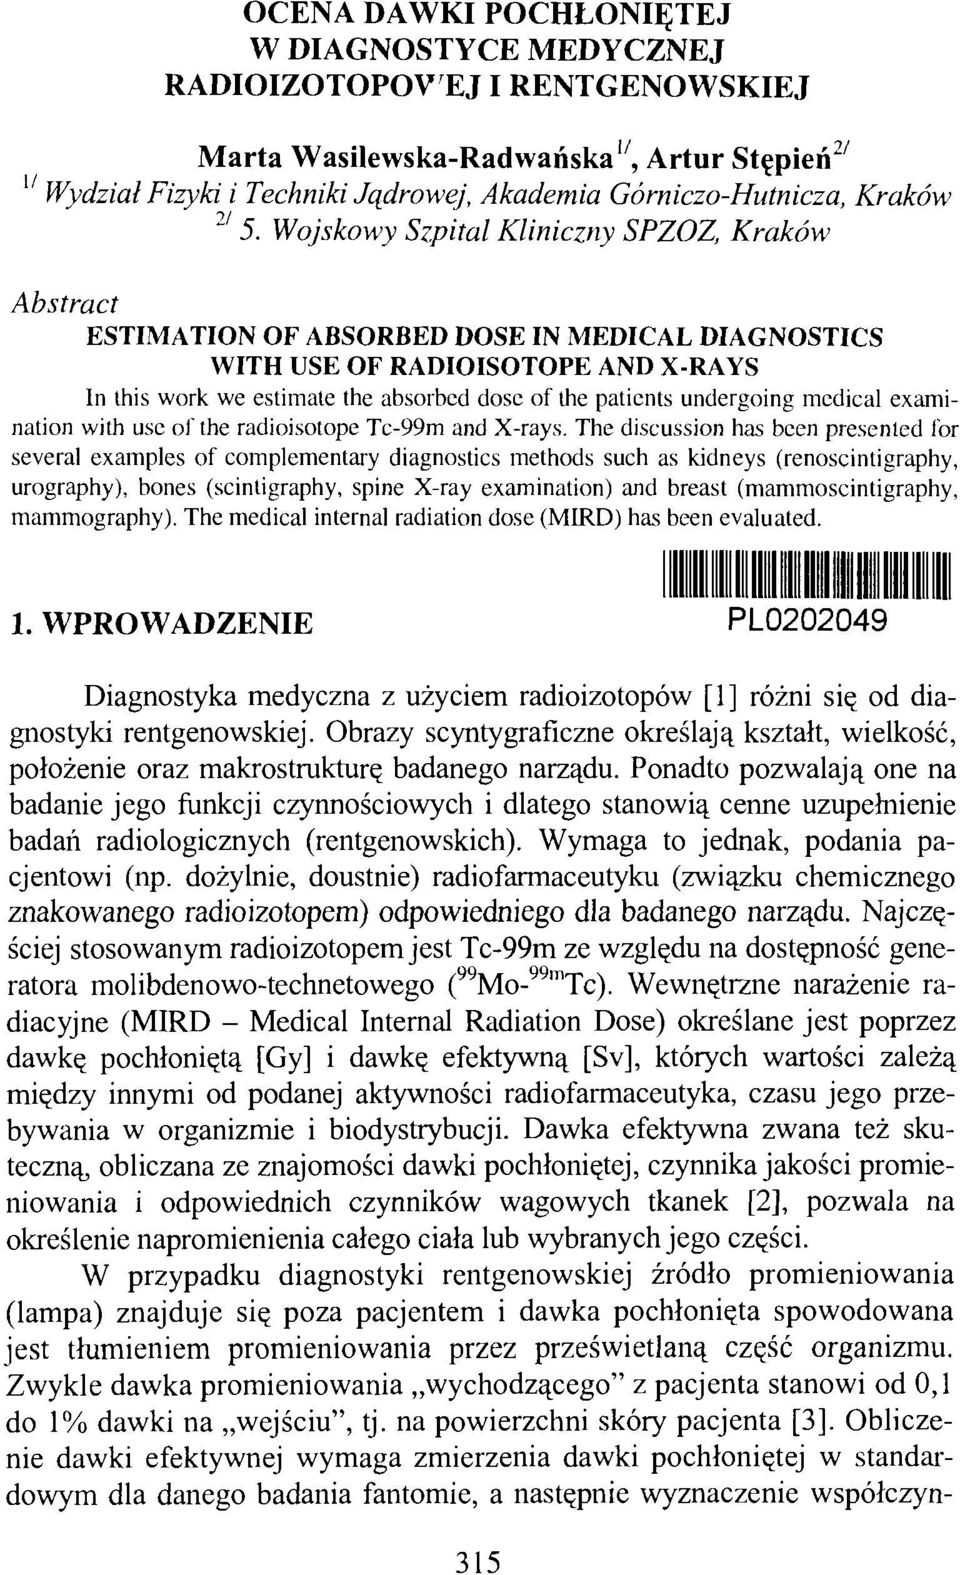 Wojskowy Szpital Kliniczny SPZOZ, Kraków Abstract ESTIMATION OF ABSORBED DOSE IN MEDICAL DIAGNOSTICS WITH USE OF RADIOISOTOPE AND X-RAYS In this work we estimate the absorbed dose of the patients